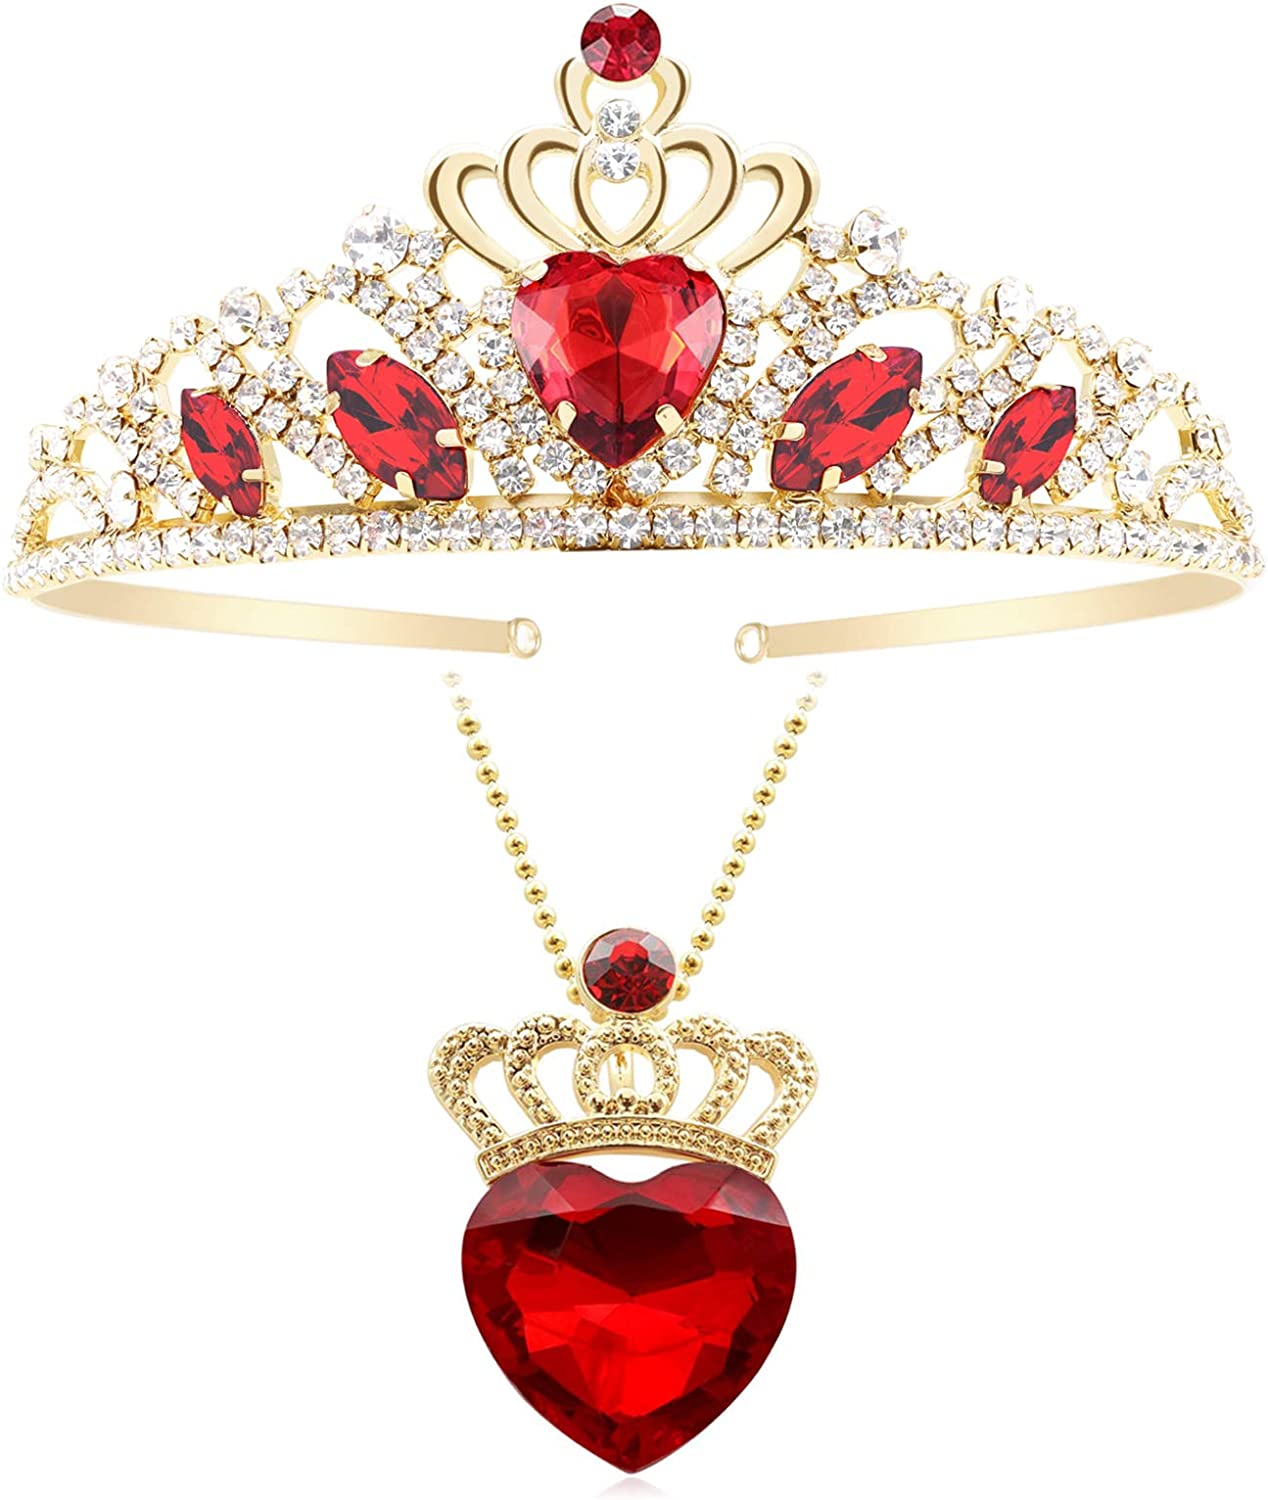 Evie Red Heart Crown and Phoenix Mall Necklace Jewel Now free shipping Gold 3 Tiara Descendants